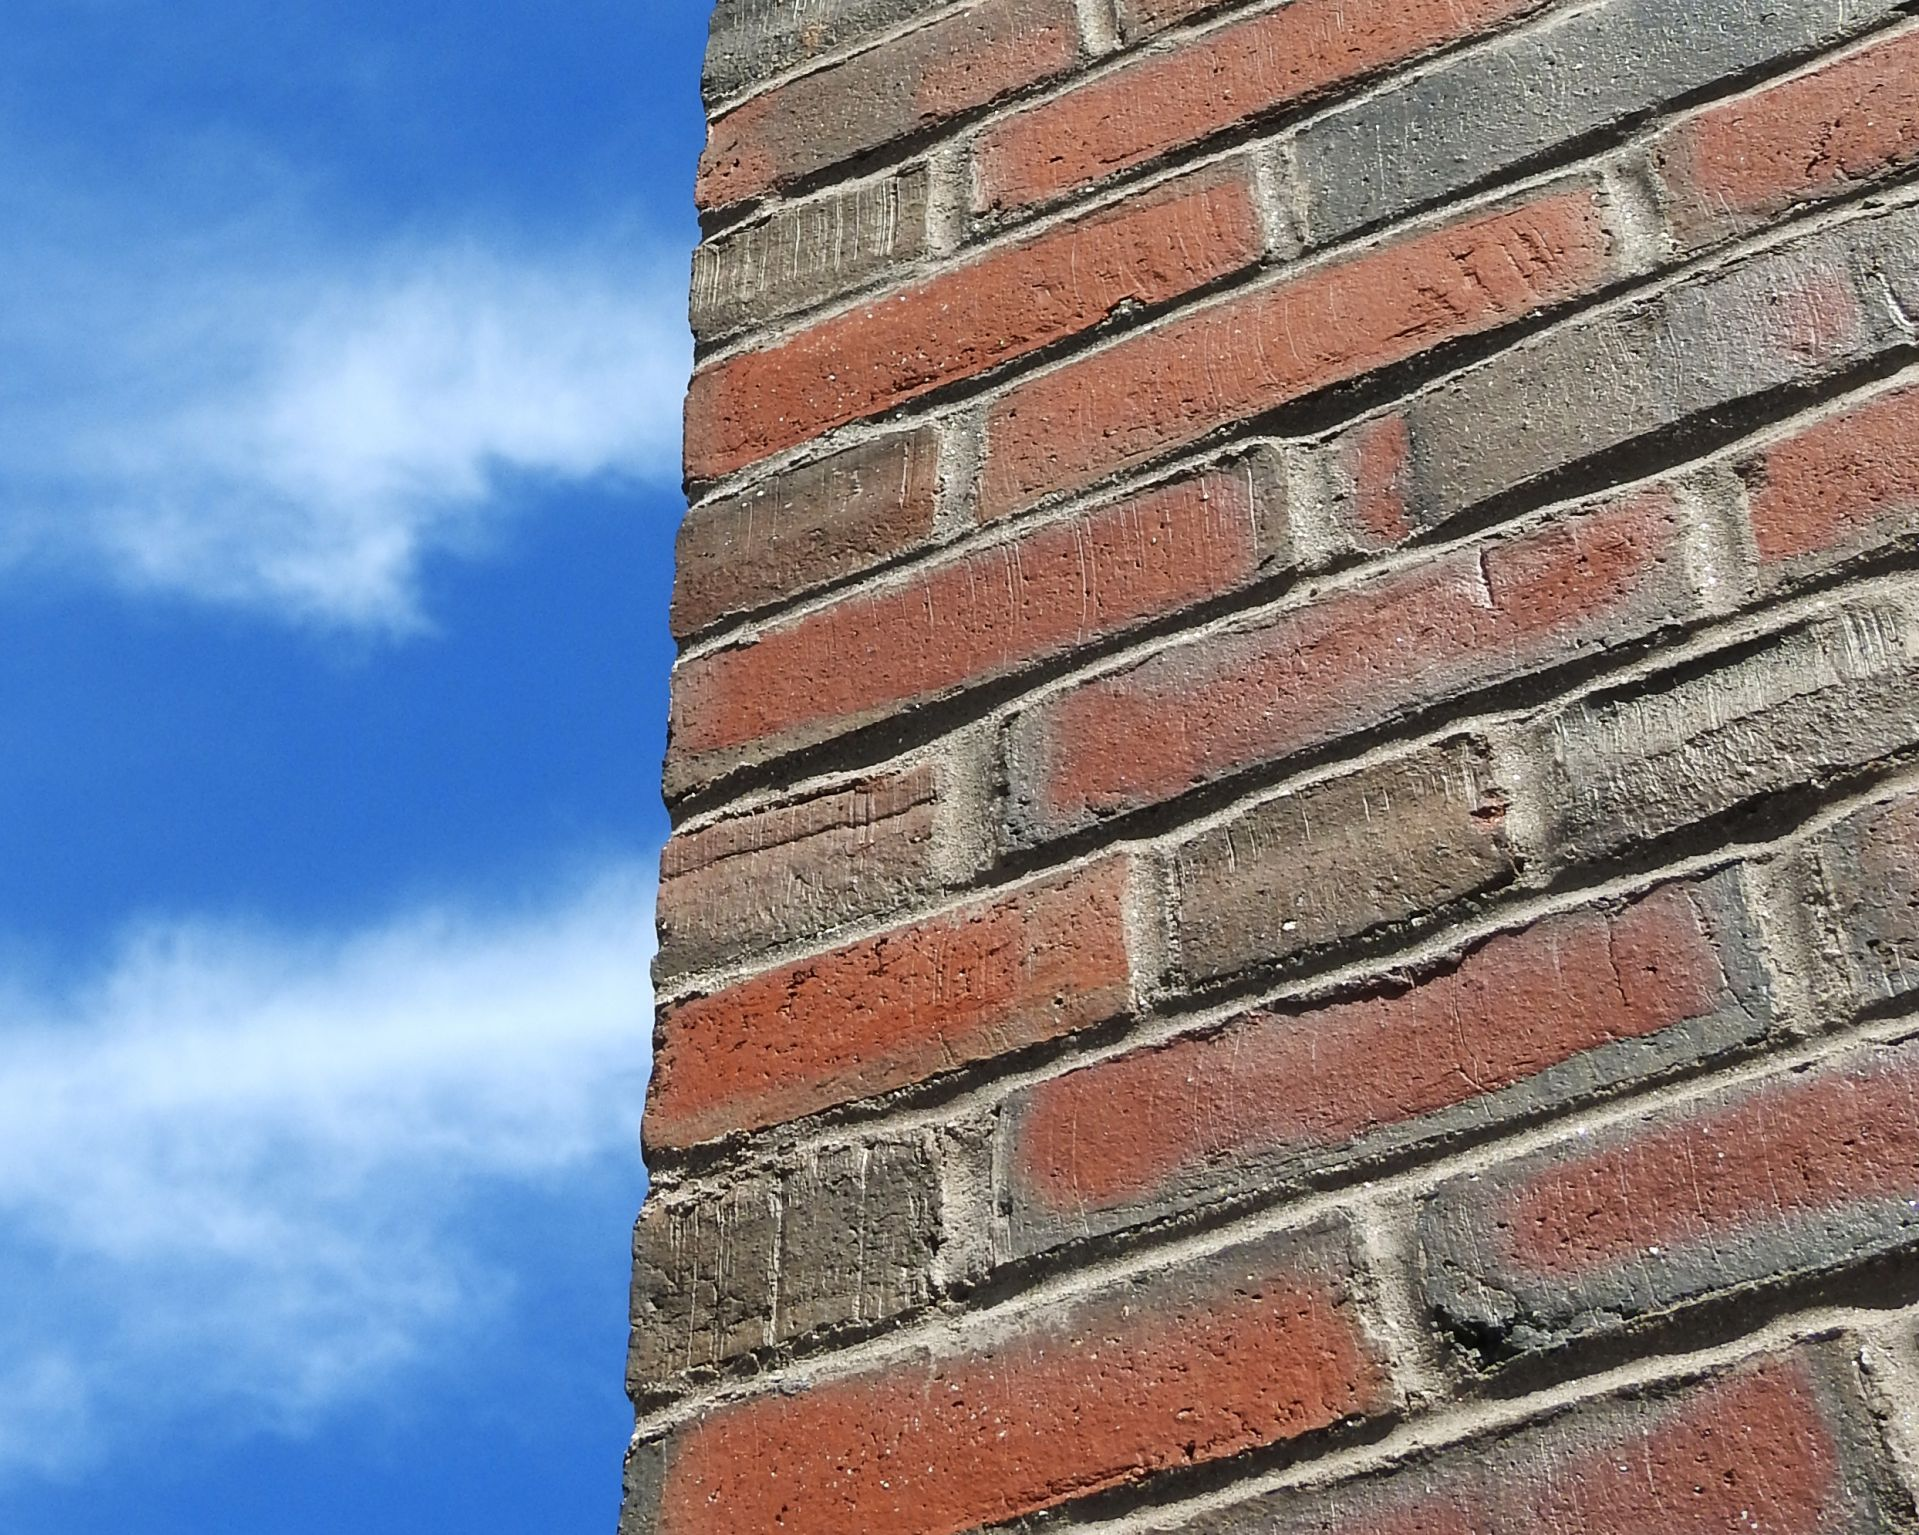 """Commons is one of manyBates buildings cloaked inwaterstruck bricks sourcedfrom local clay. """"No twowaterstruck brick areexactly alike,"""" says JasonLachance of Morin BrickCo. of Auburn. (Brickprofessionals don'tpluralize with an """"s."""") (Jay Burns/Bates College)"""